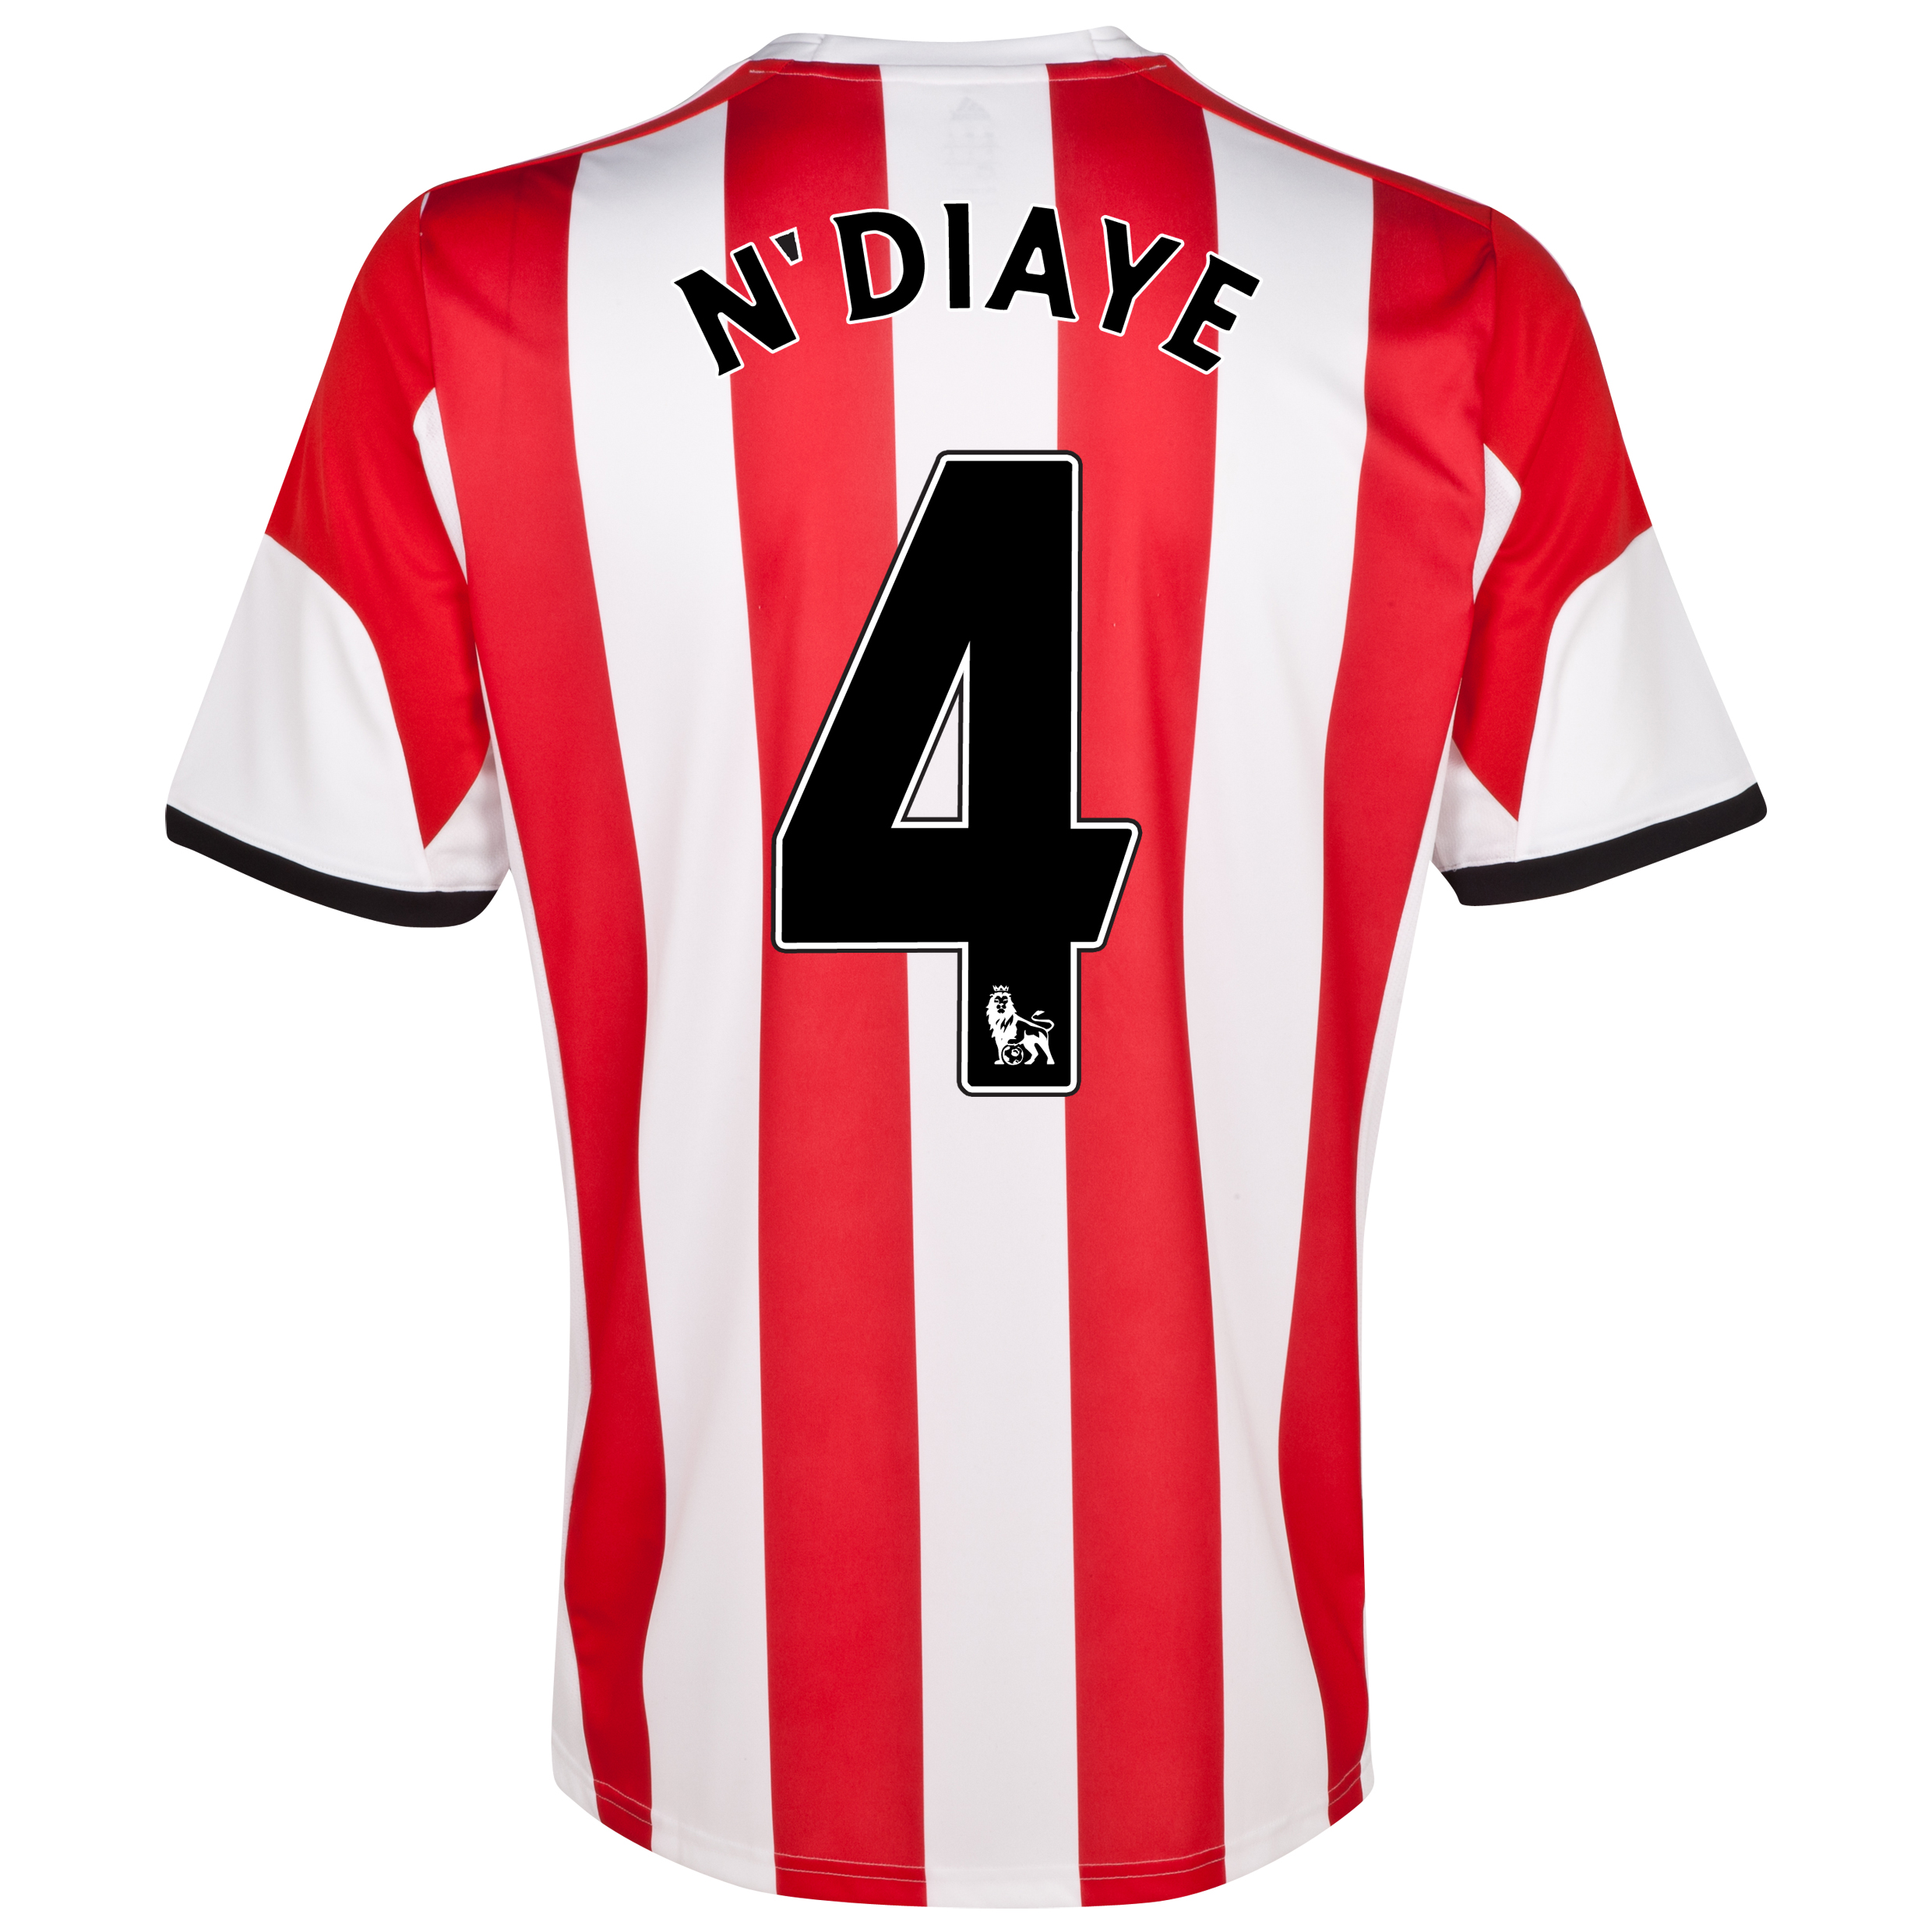 Sunderland Home Shirt 2013/14 - Junior with N'Diaye 4 printing